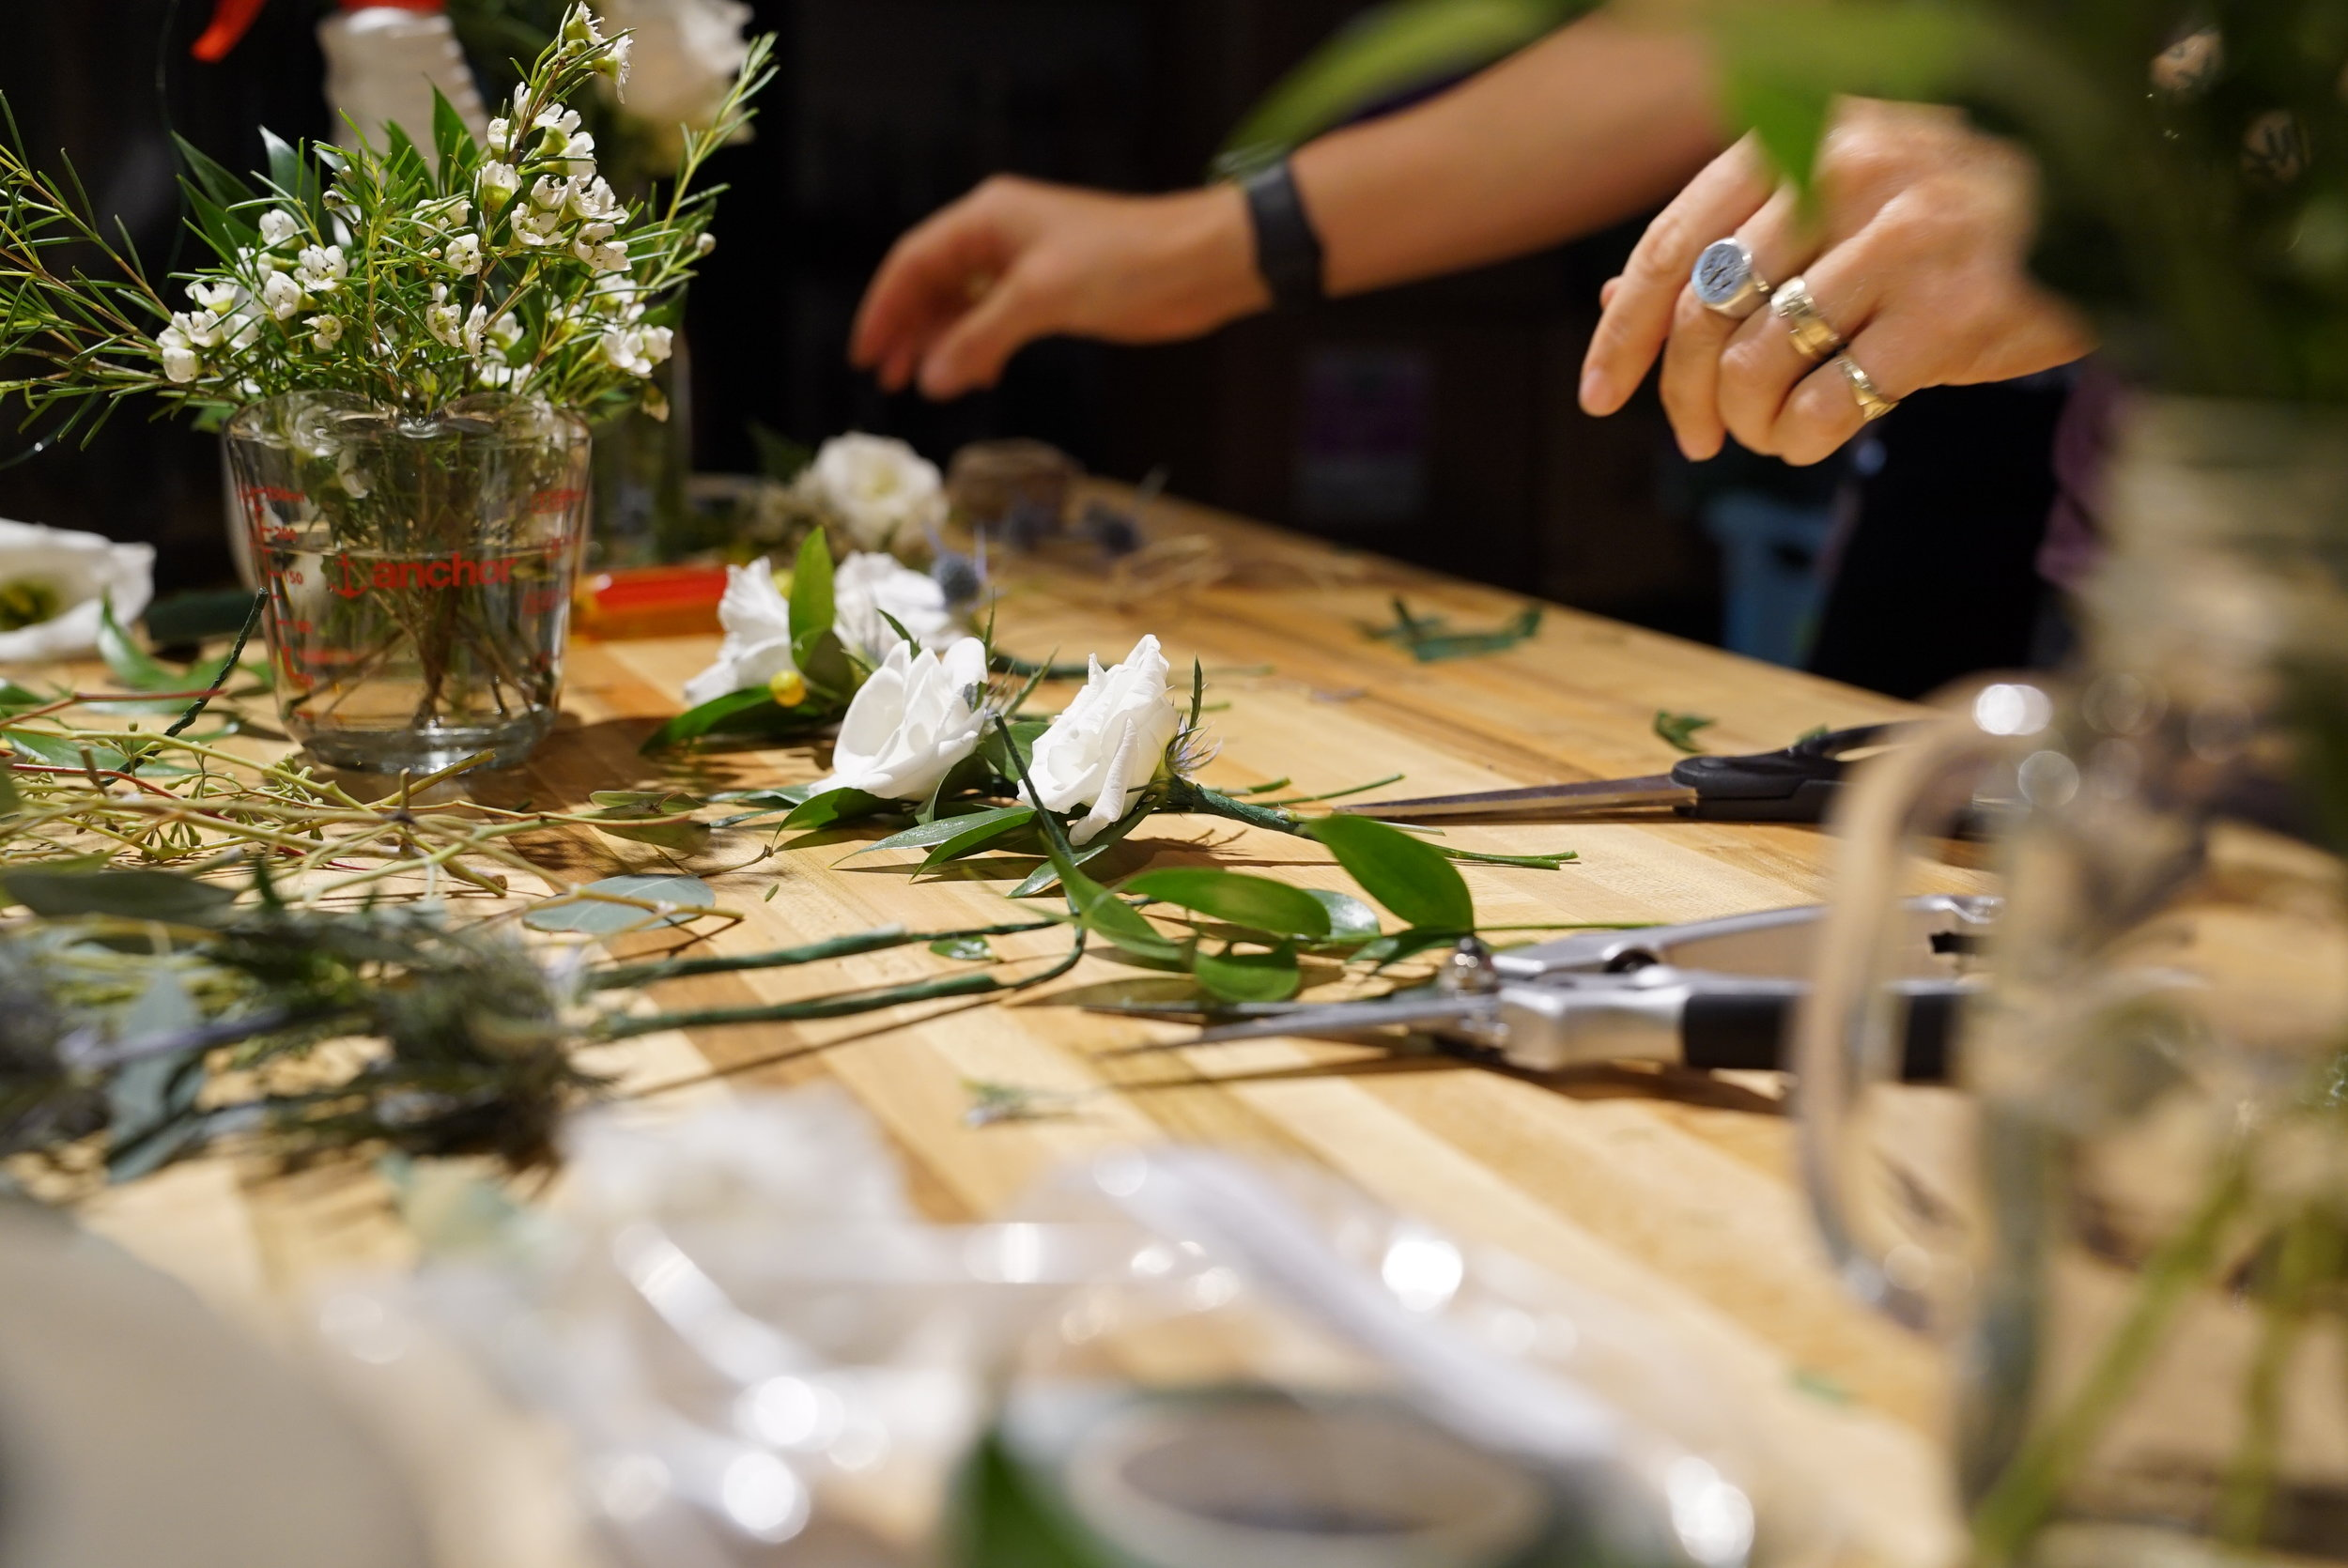 Boutonnieres are one of the last things to be assembled, as they will not have access to water once they're made. Lisianthus, while incredibly delicate looking, are actually a great choice for a long lasting boutonniere.